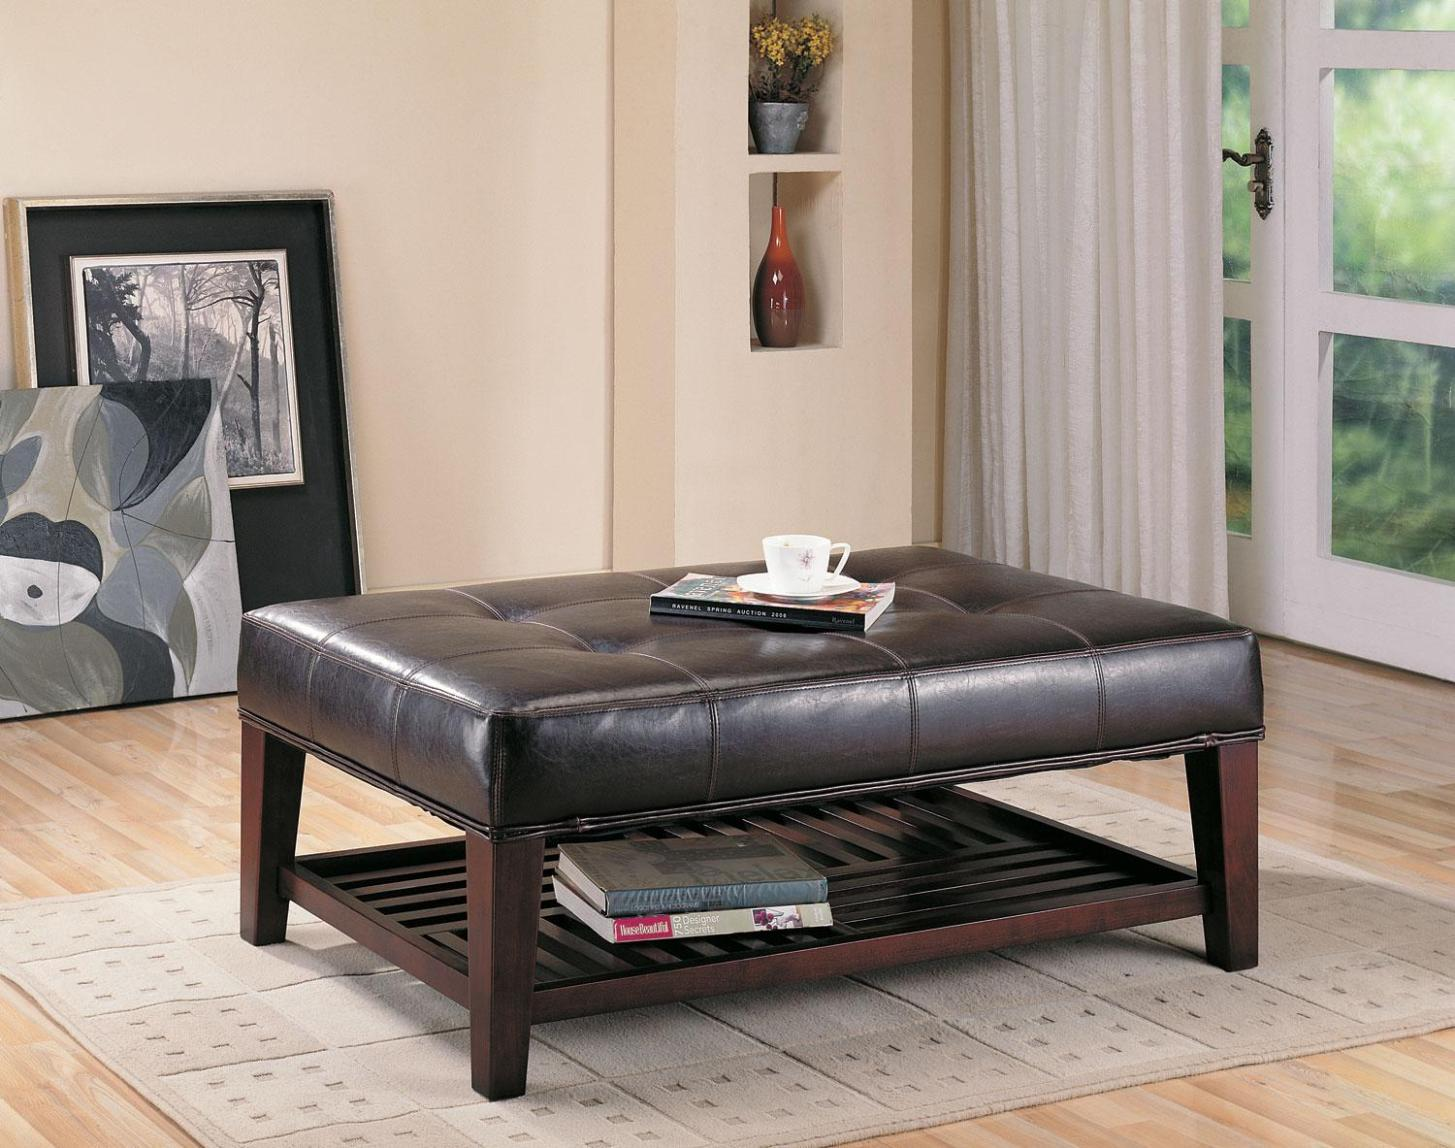 Image of: Tufted Ottoman With Shelf